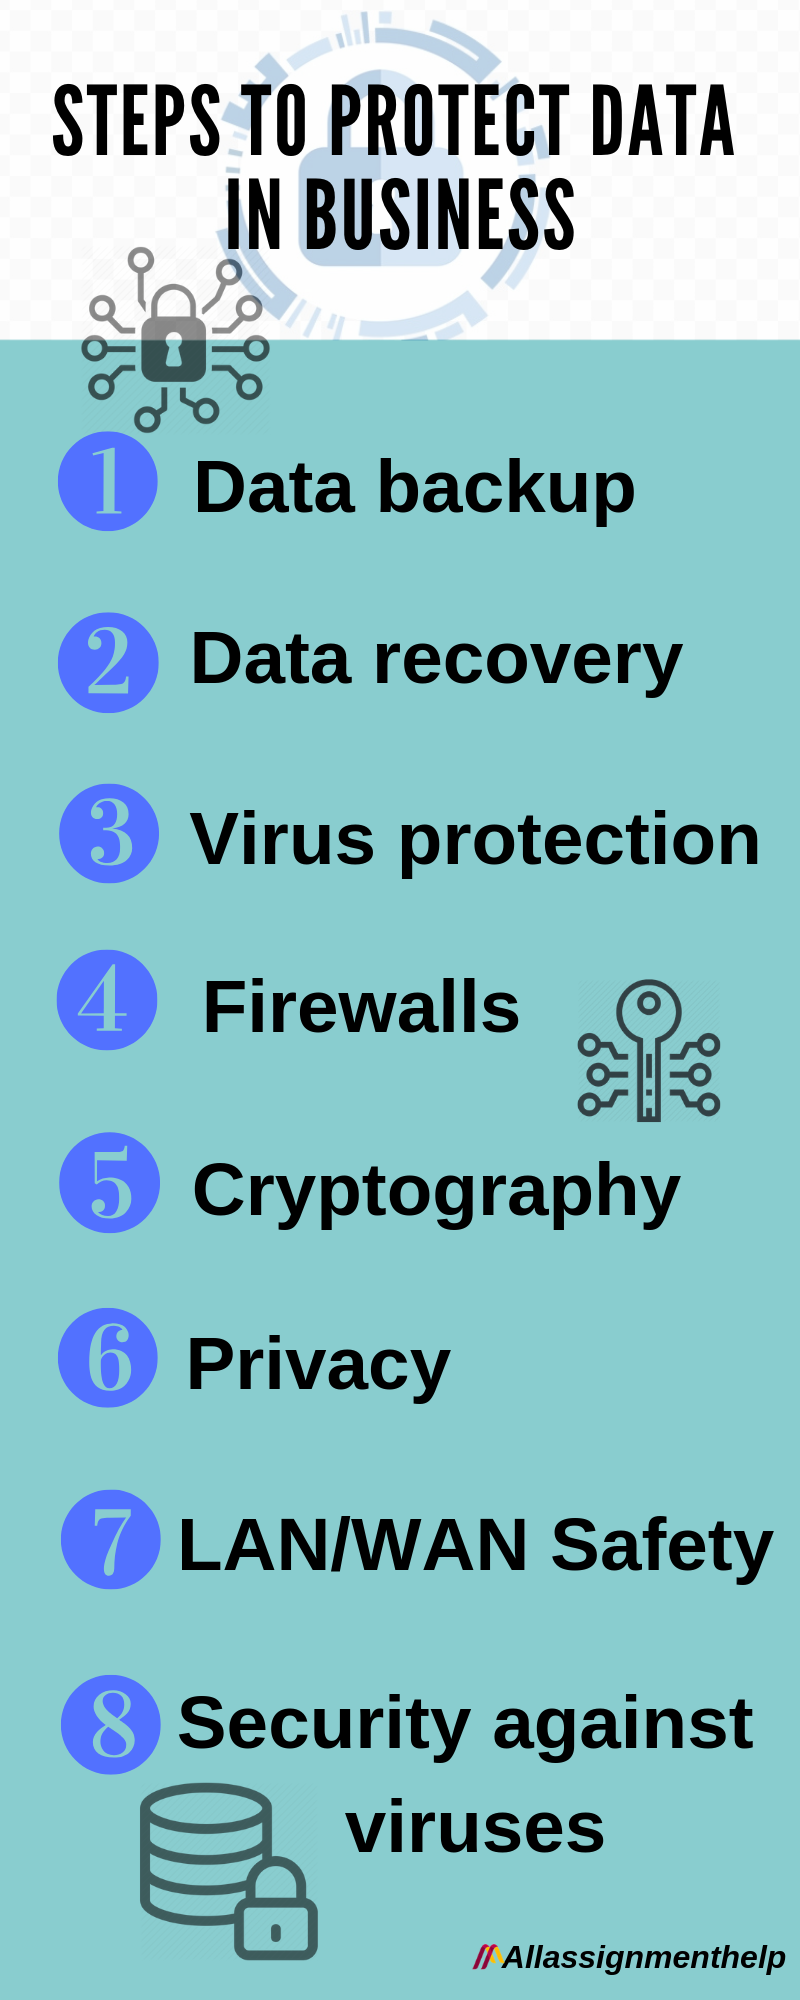 Steps to protect data in business.png